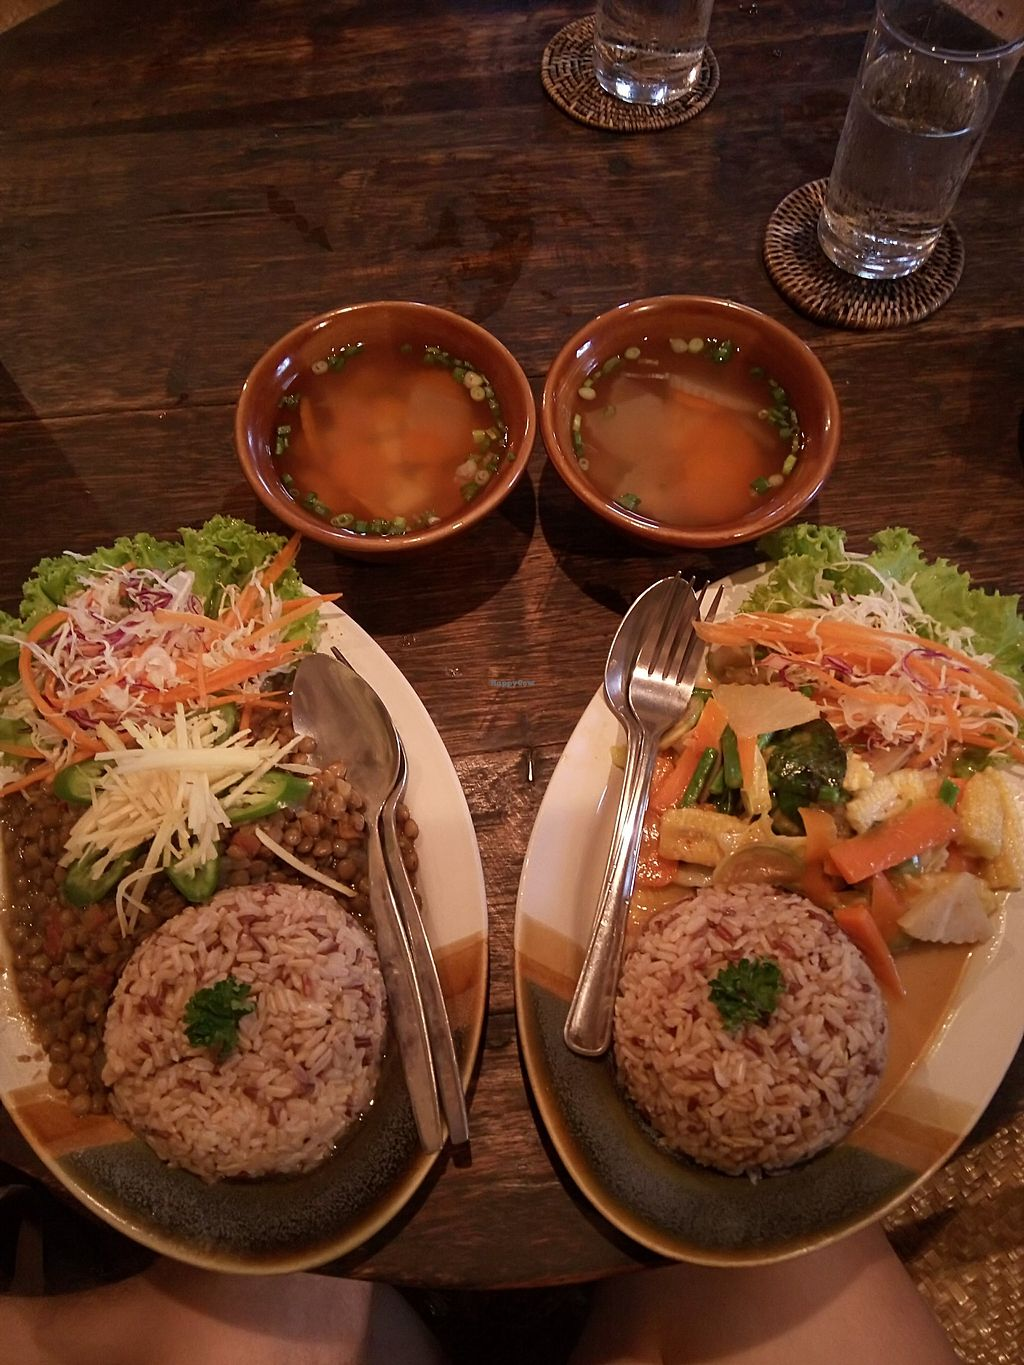 """Photo of Ramon Cafe  by <a href=""""/members/profile/alicus"""">alicus</a> <br/>Lentils and Curry <br/> February 17, 2018  - <a href='/contact/abuse/image/90714/360371'>Report</a>"""